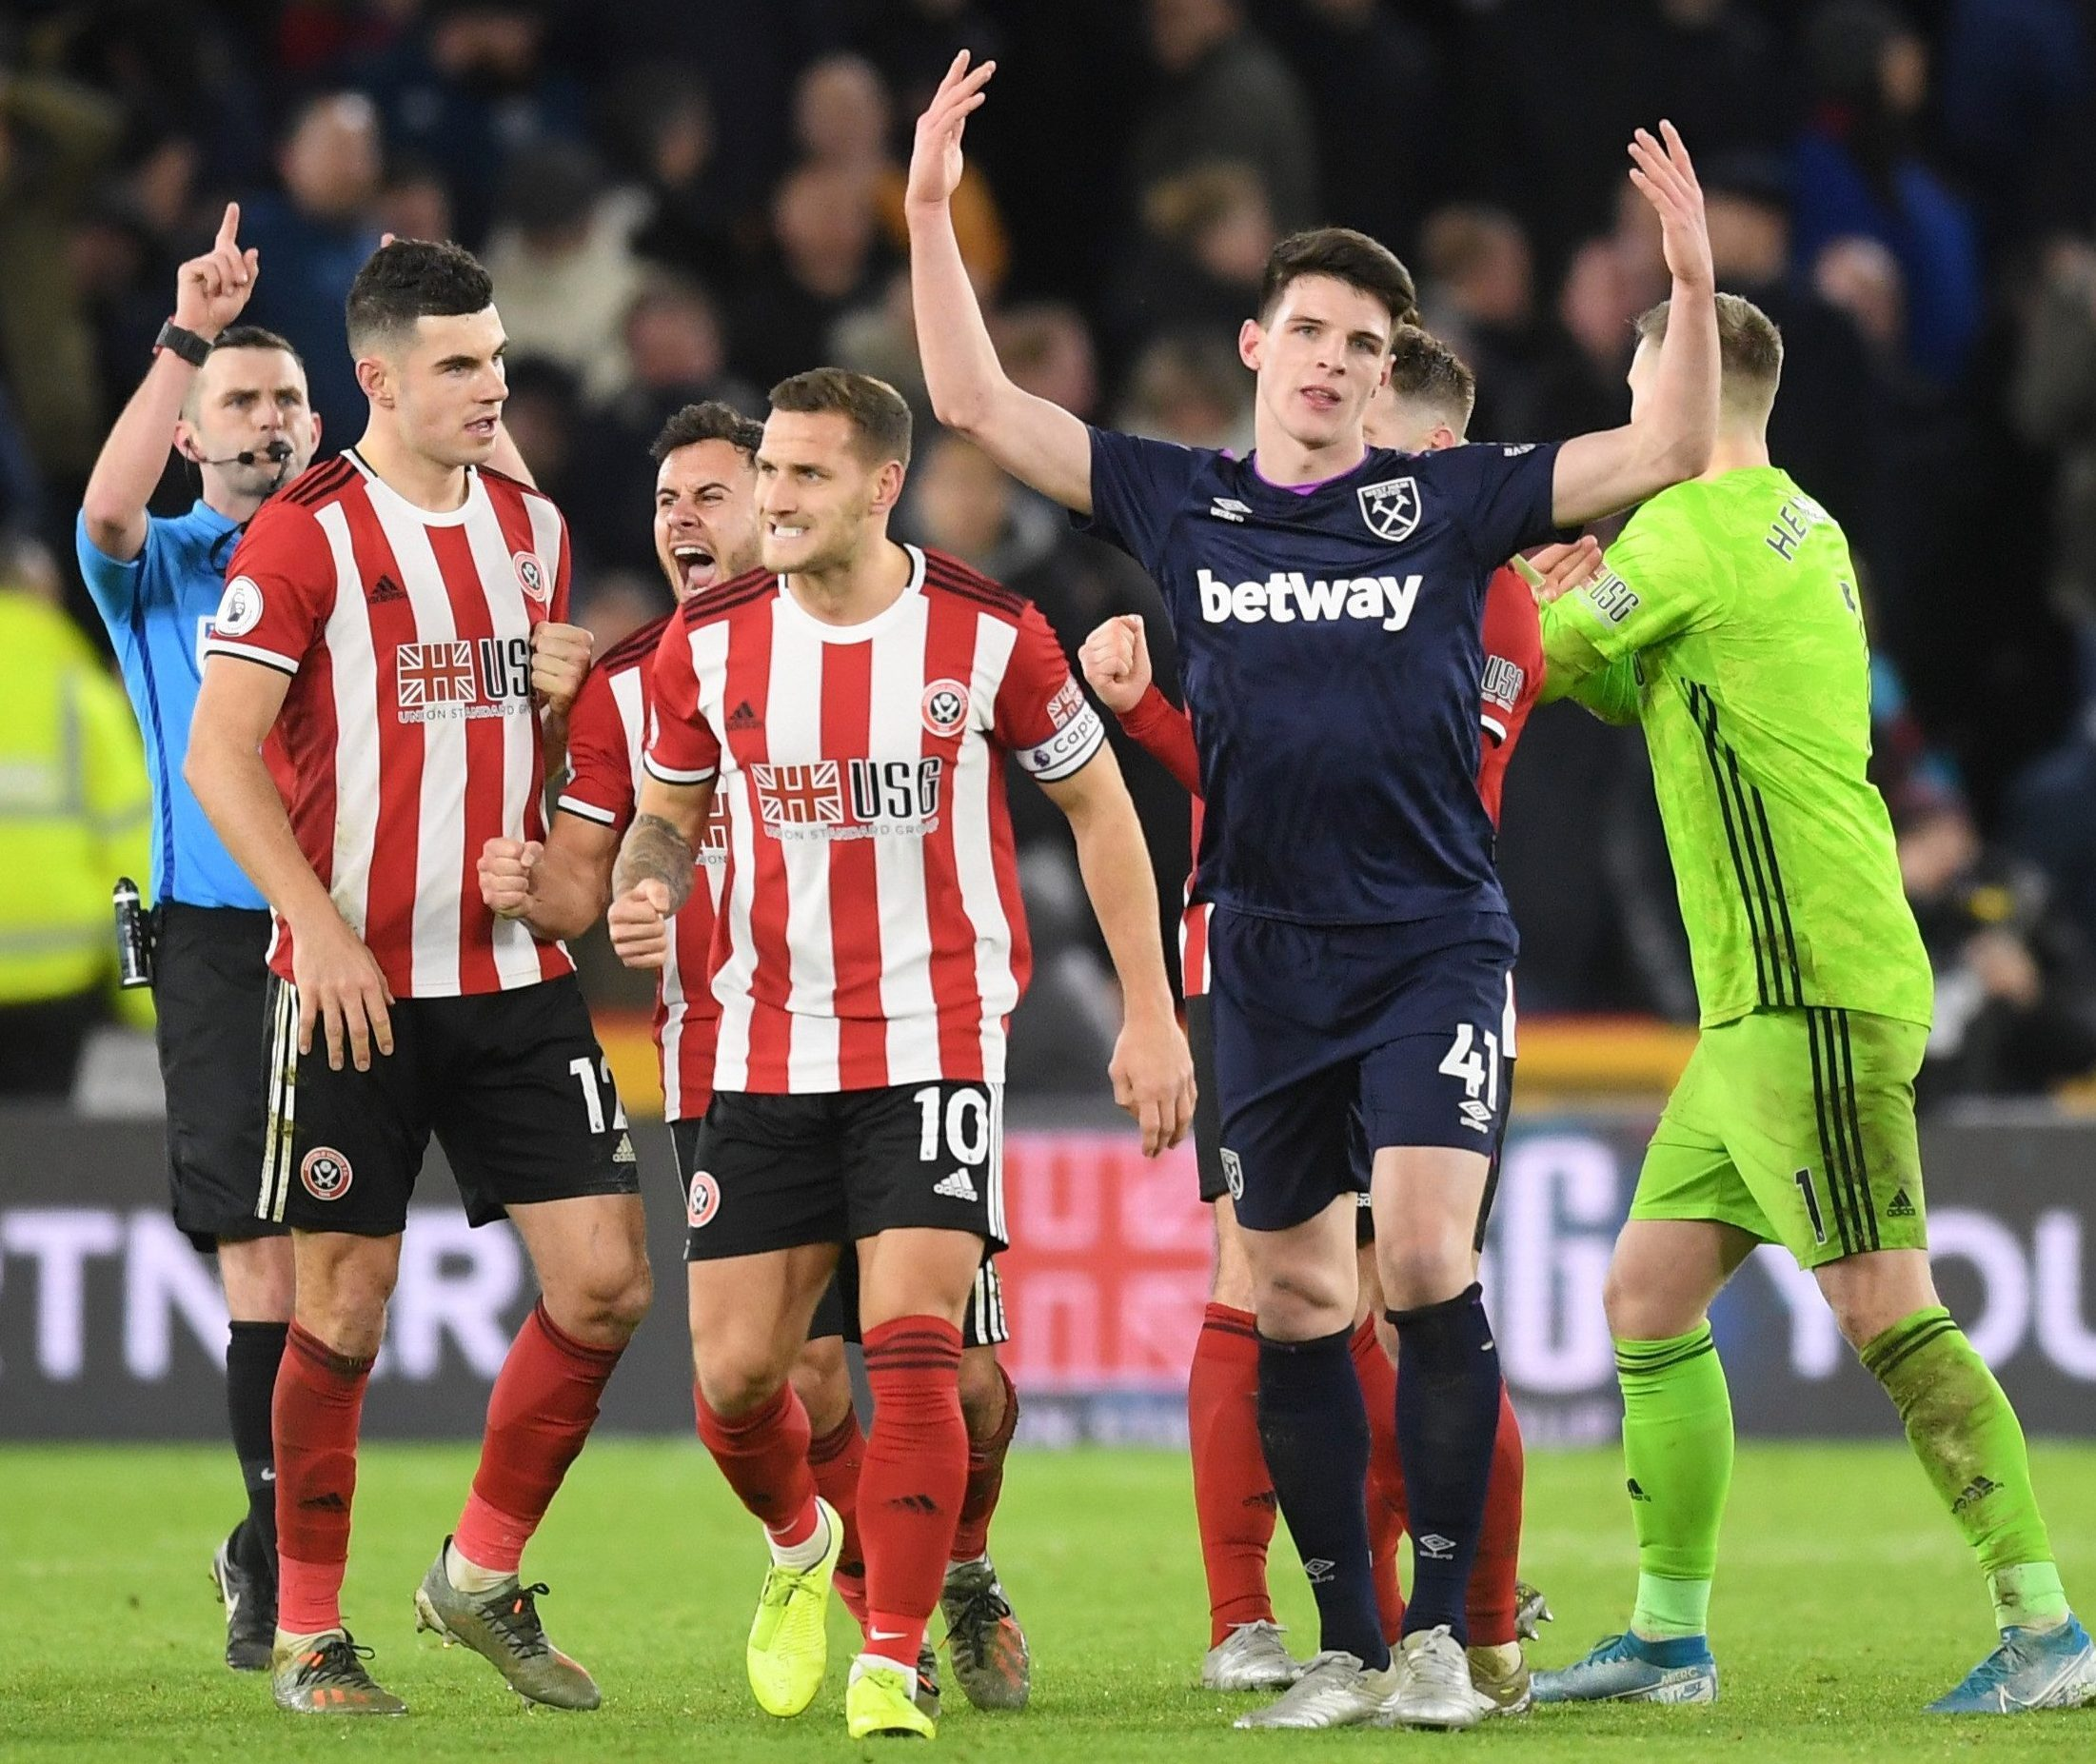 Declan Rice was penalised by VAR in injury-time for an unintentional handball